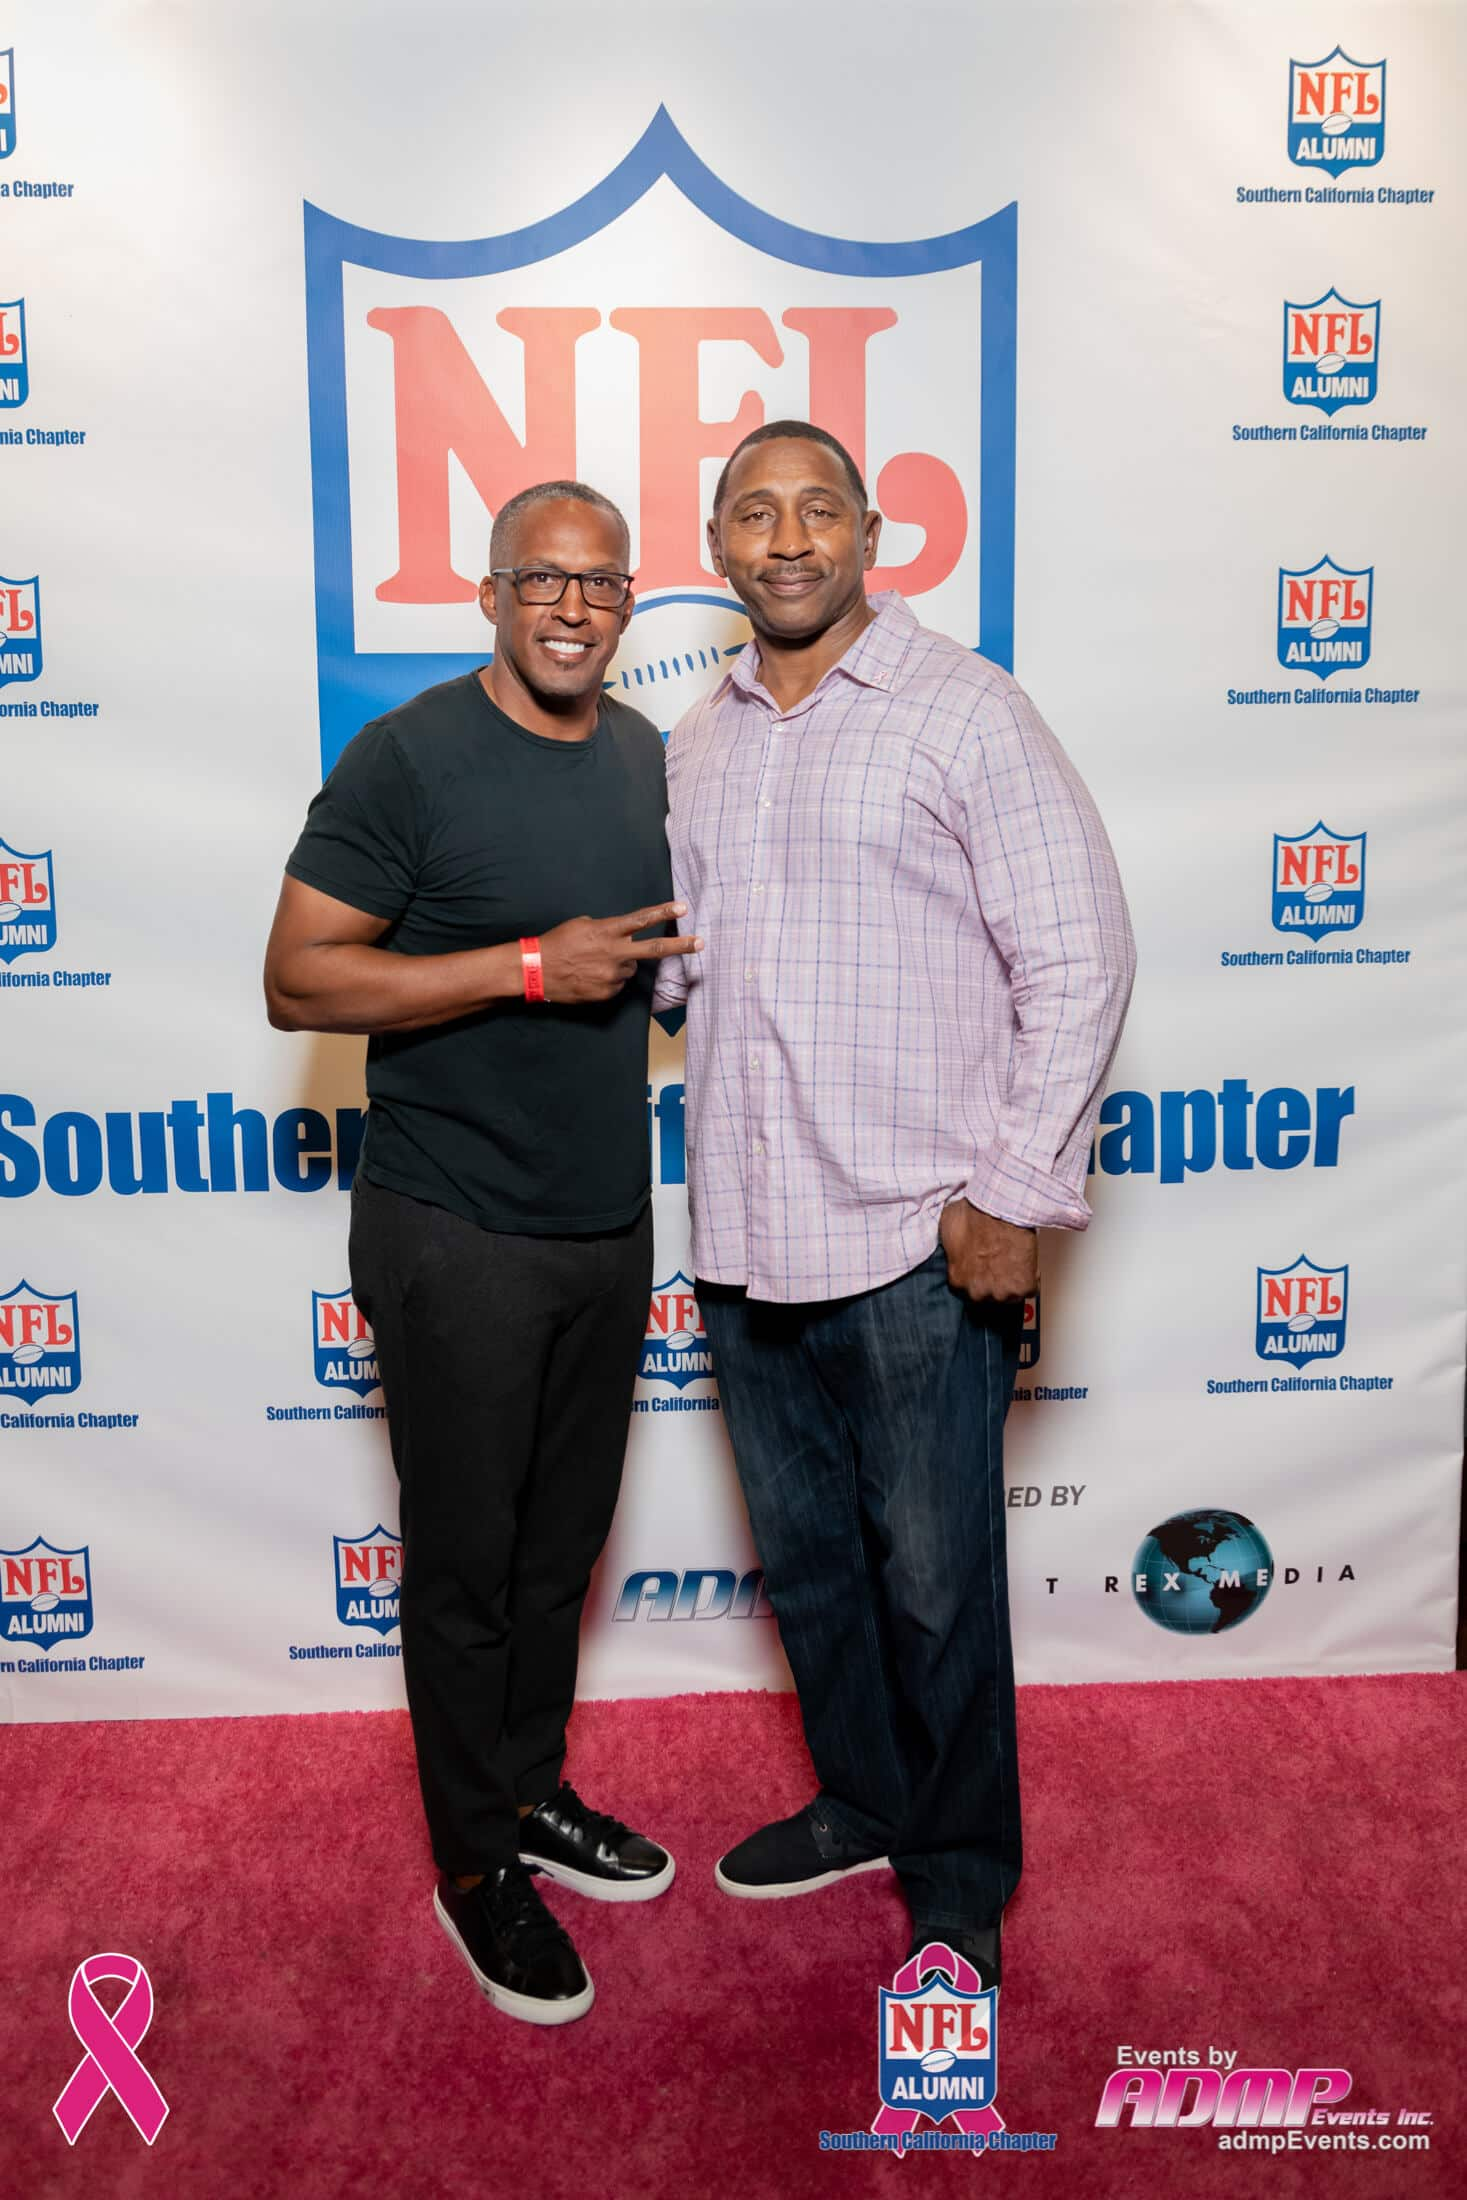 NFL Alumni SoCal Charity Event Series Breast Cancer Event 10-14-19-031